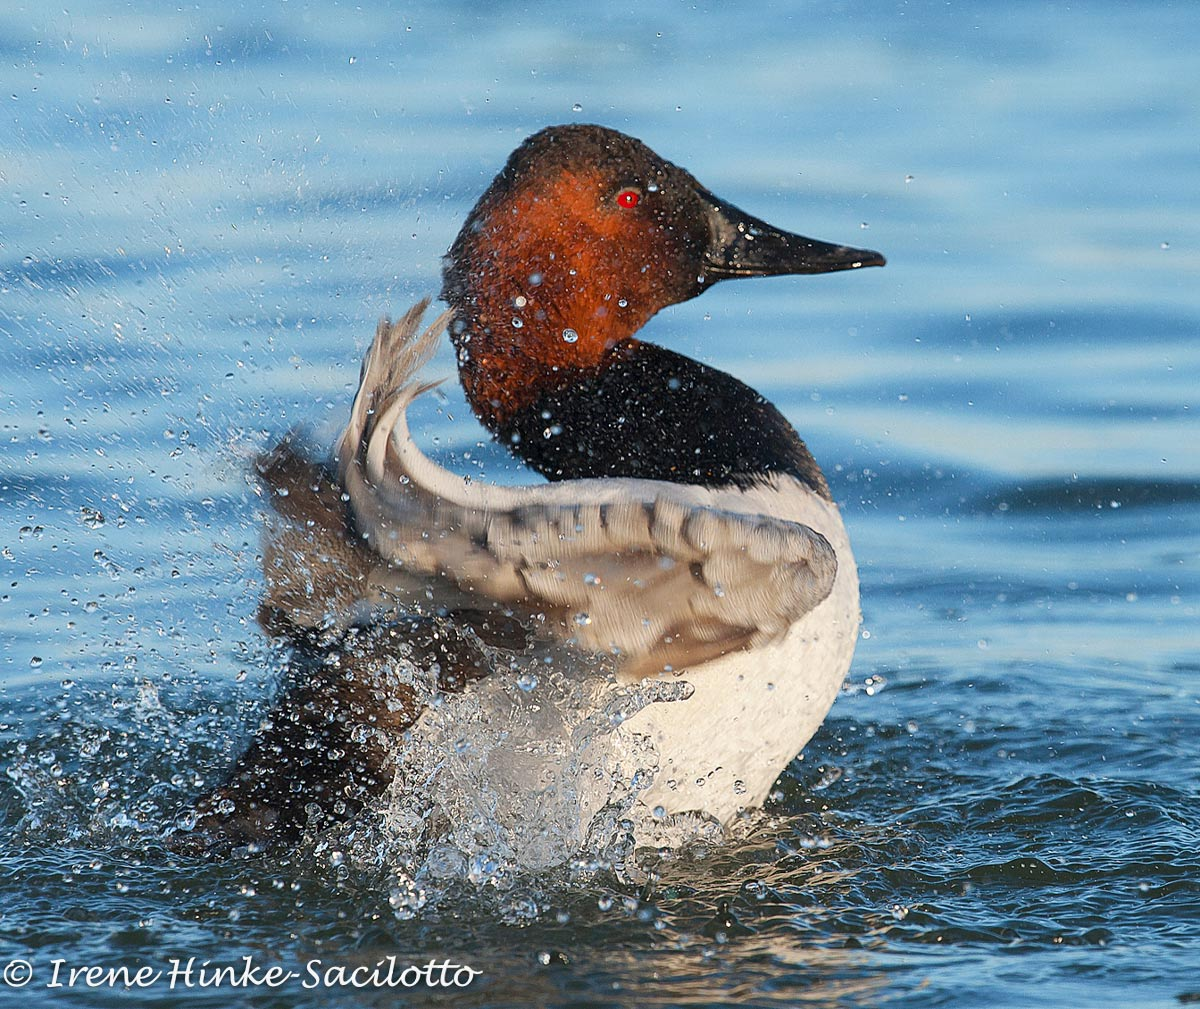 CanvasBack-word